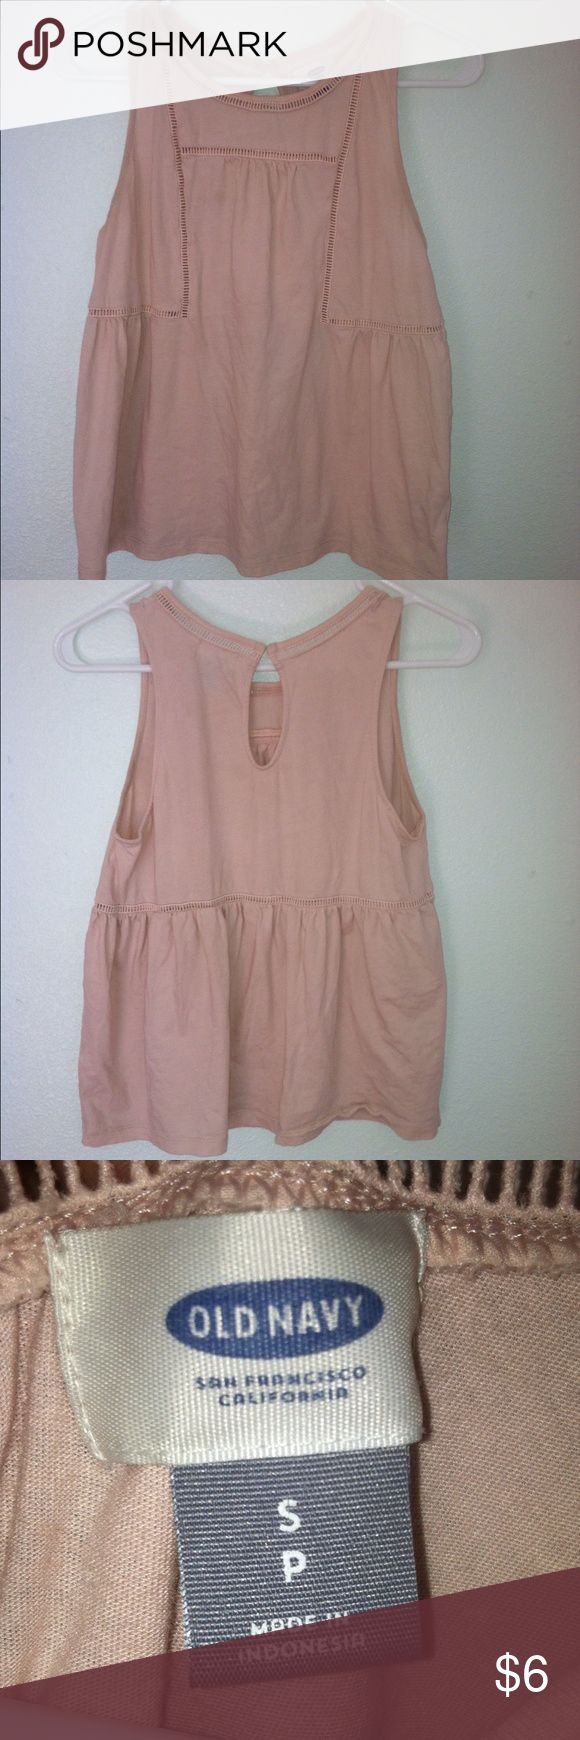 FINAL PRICE: Old Navy Babydoll Pink Peplum Top Old Navy Babydoll pink peplum style top. Size: small. In good condition! Old Navy Tops Tank Tops